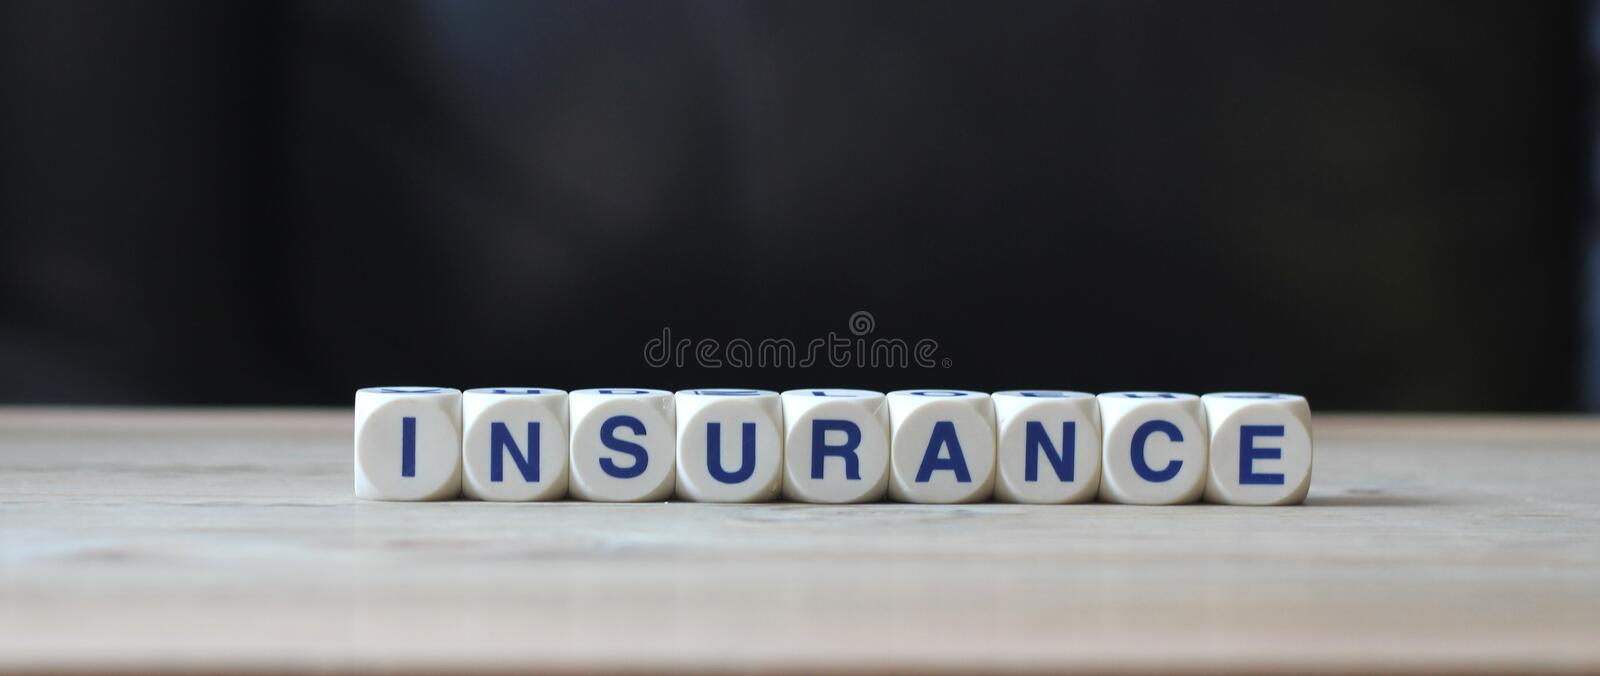 Insurance. White letter cubes on table and black background word insurance stock images